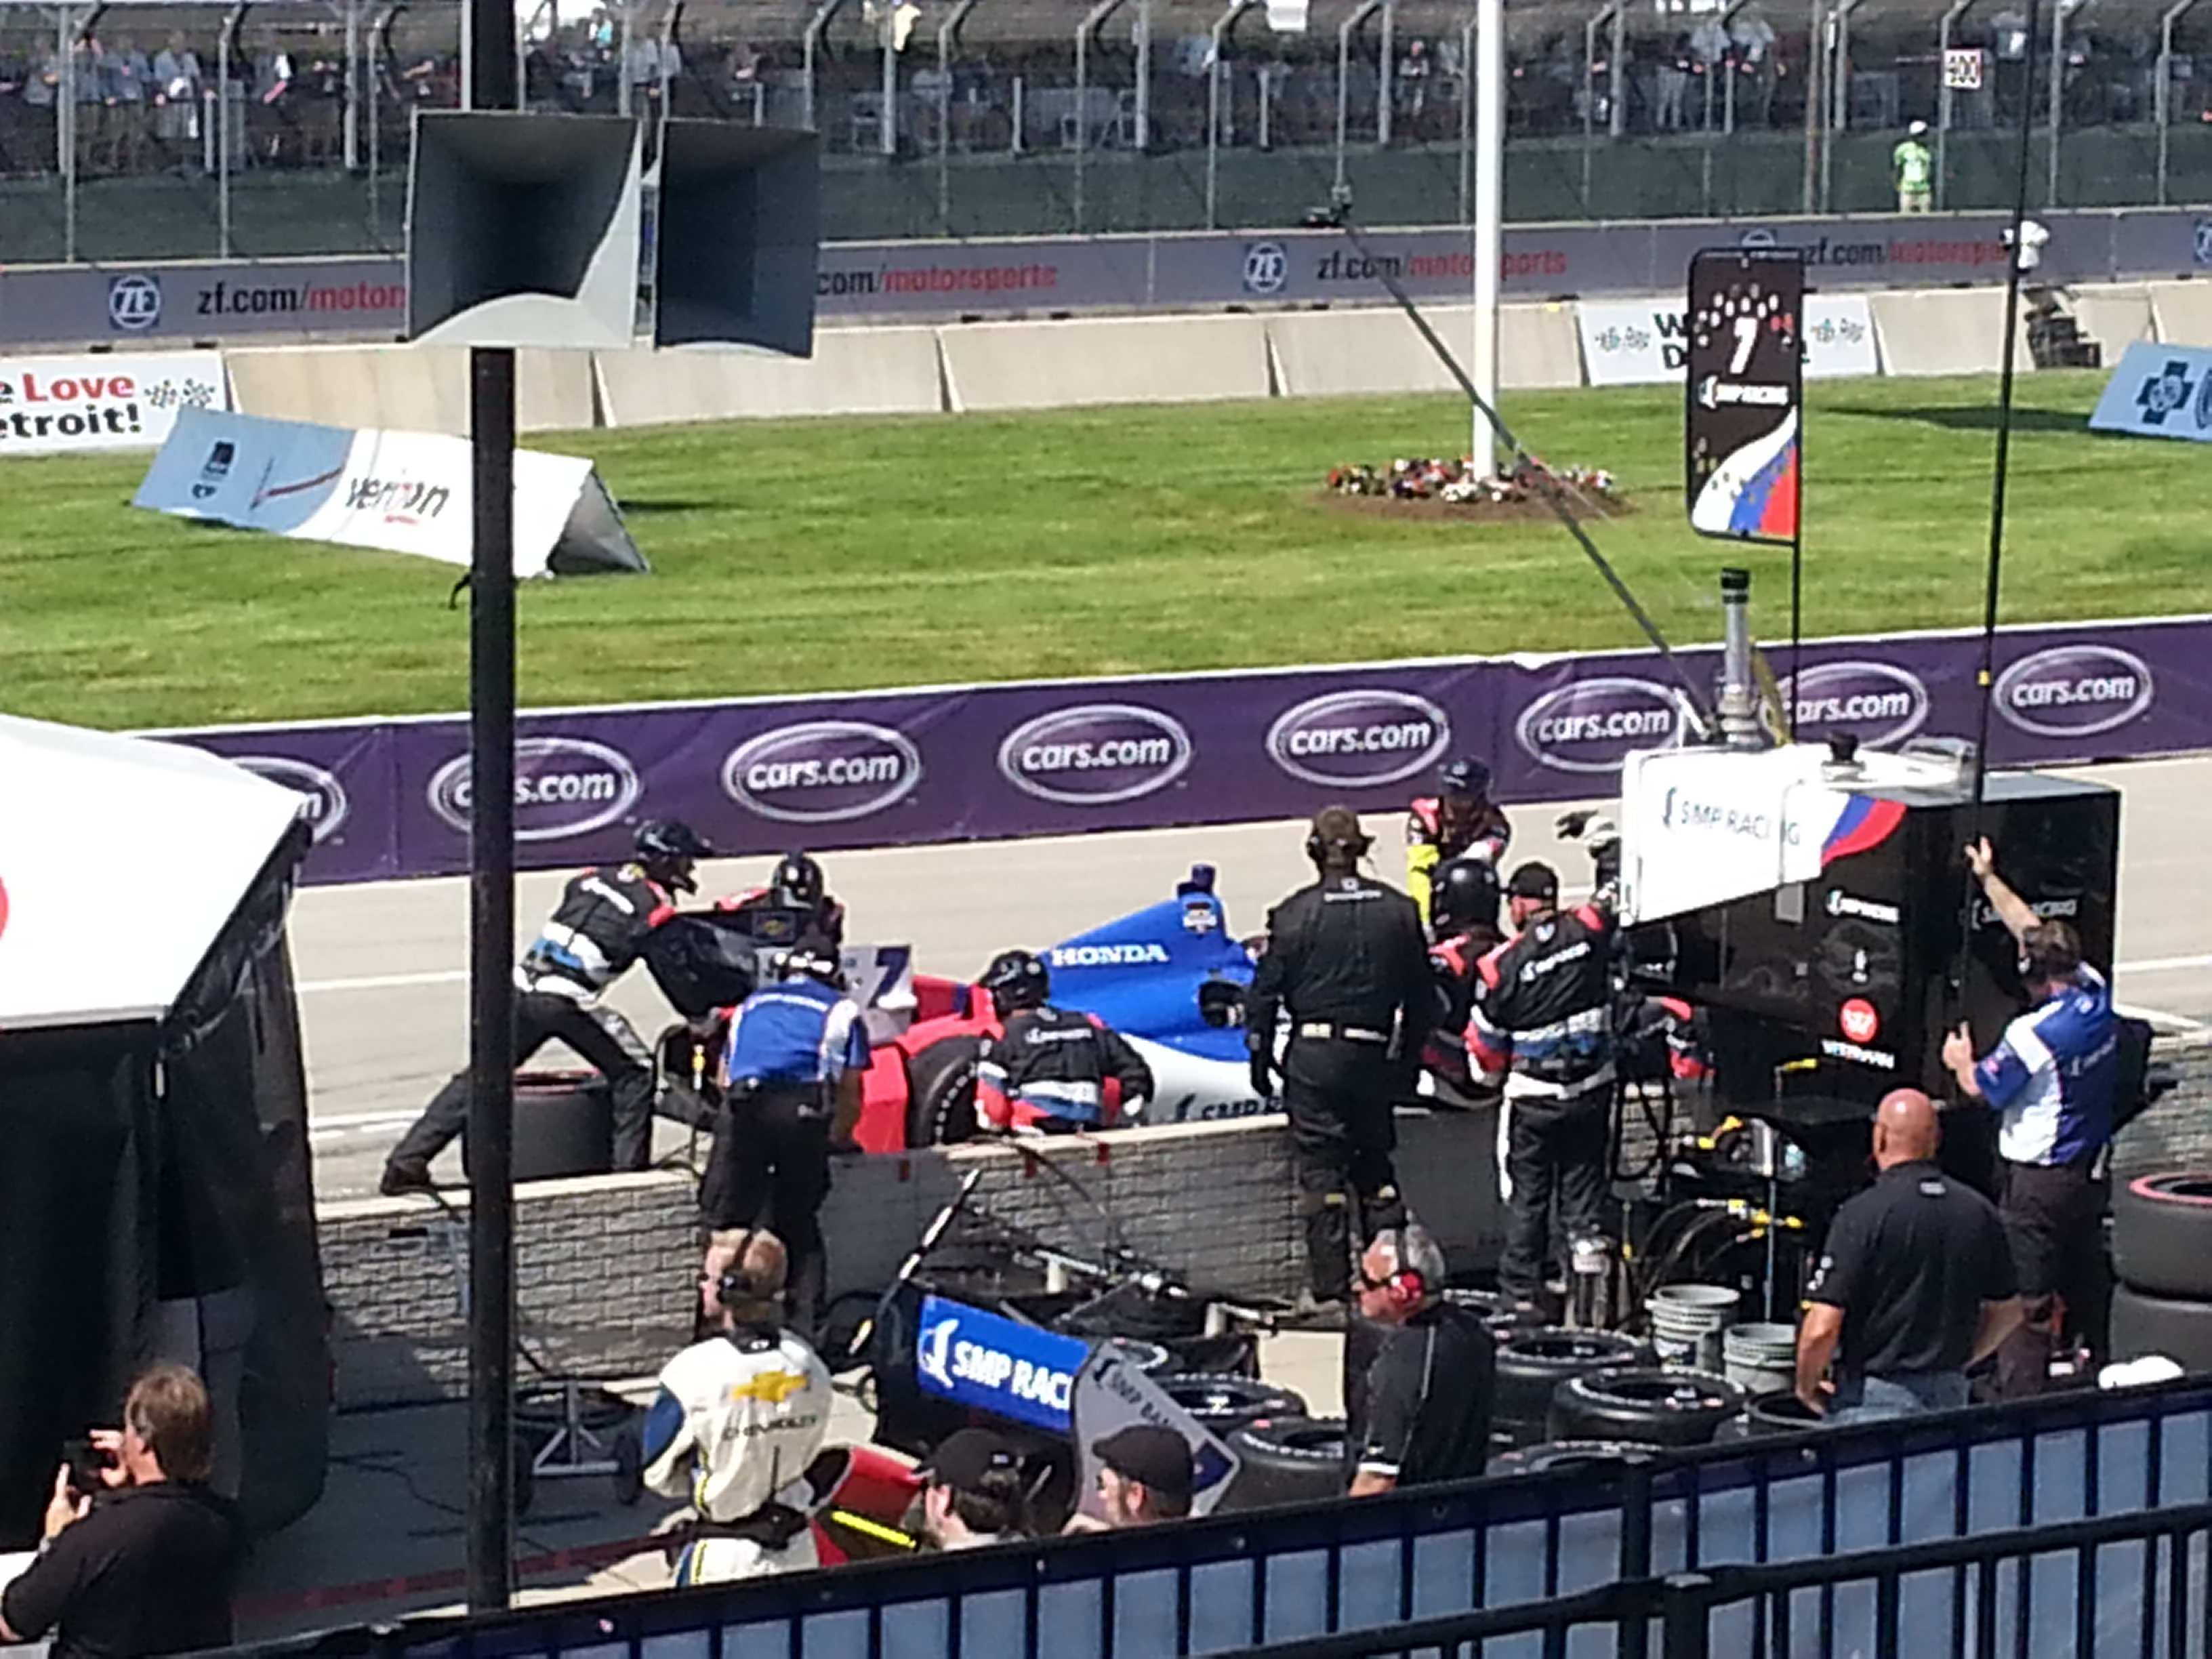 Rookie Mikhail Aleshin pits early at the Detroit Belle Isle Grand Prix, June 1, 2014. (Photo by Cheryl Johnstone)